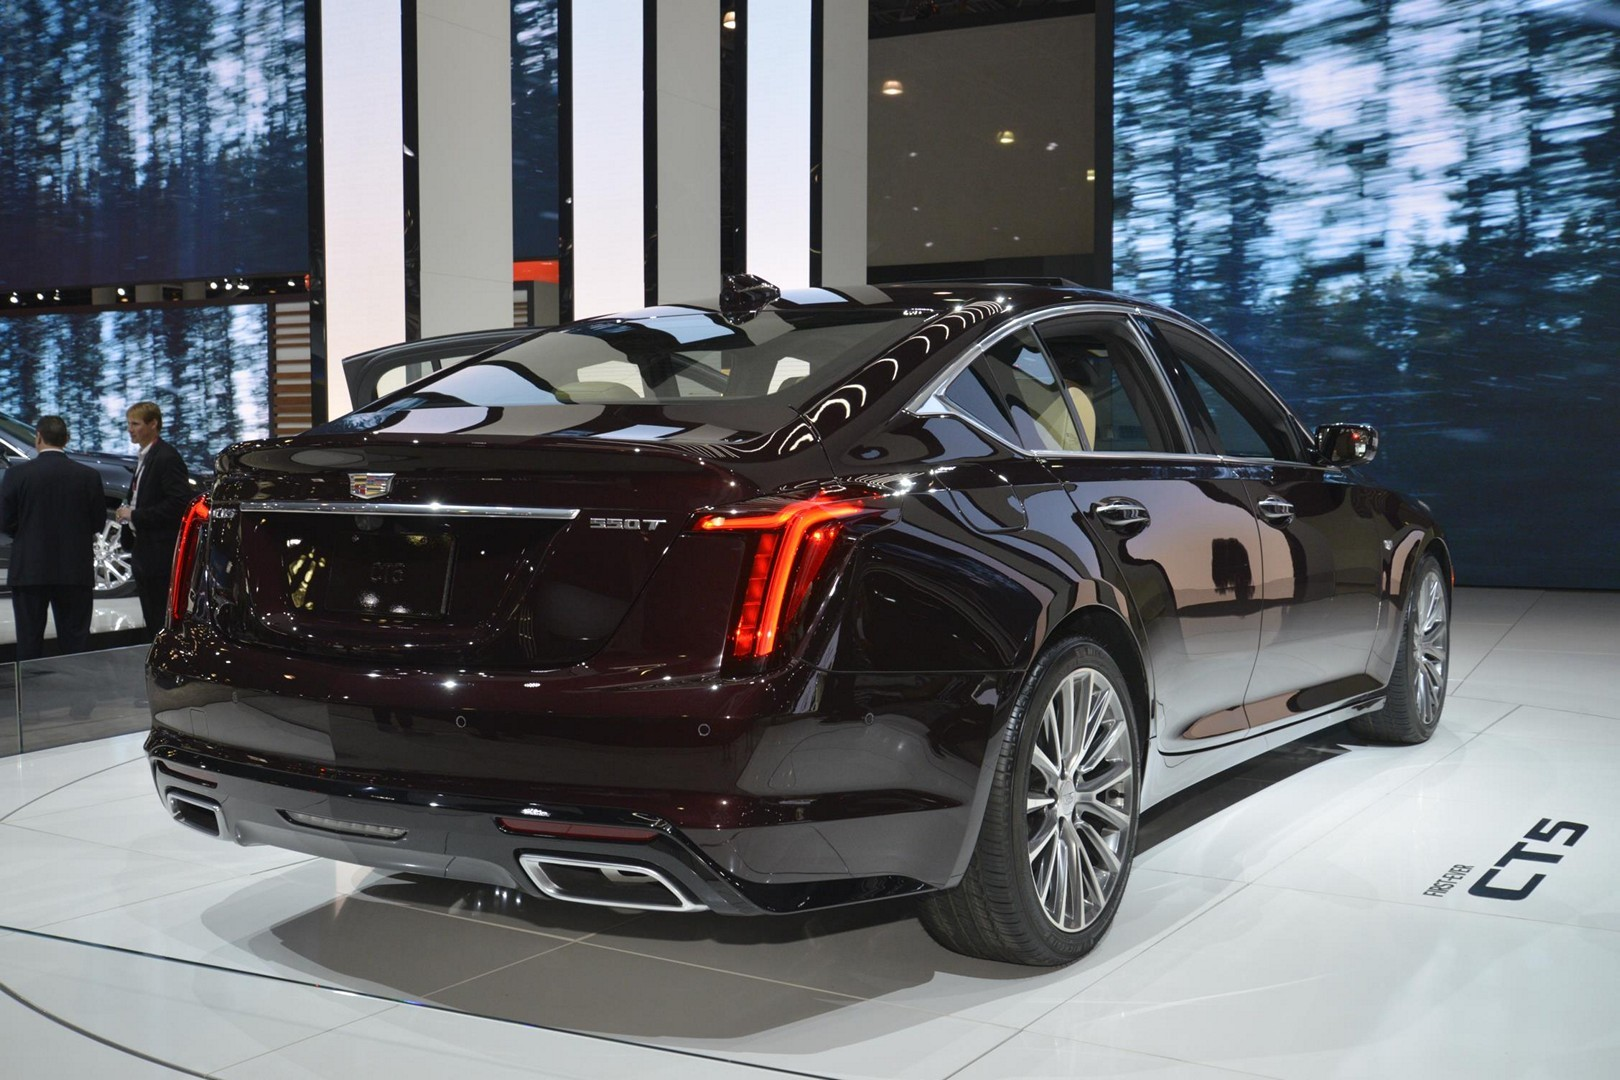 2020 Cadillac CT5 Is Confusing In Many Ways At New York